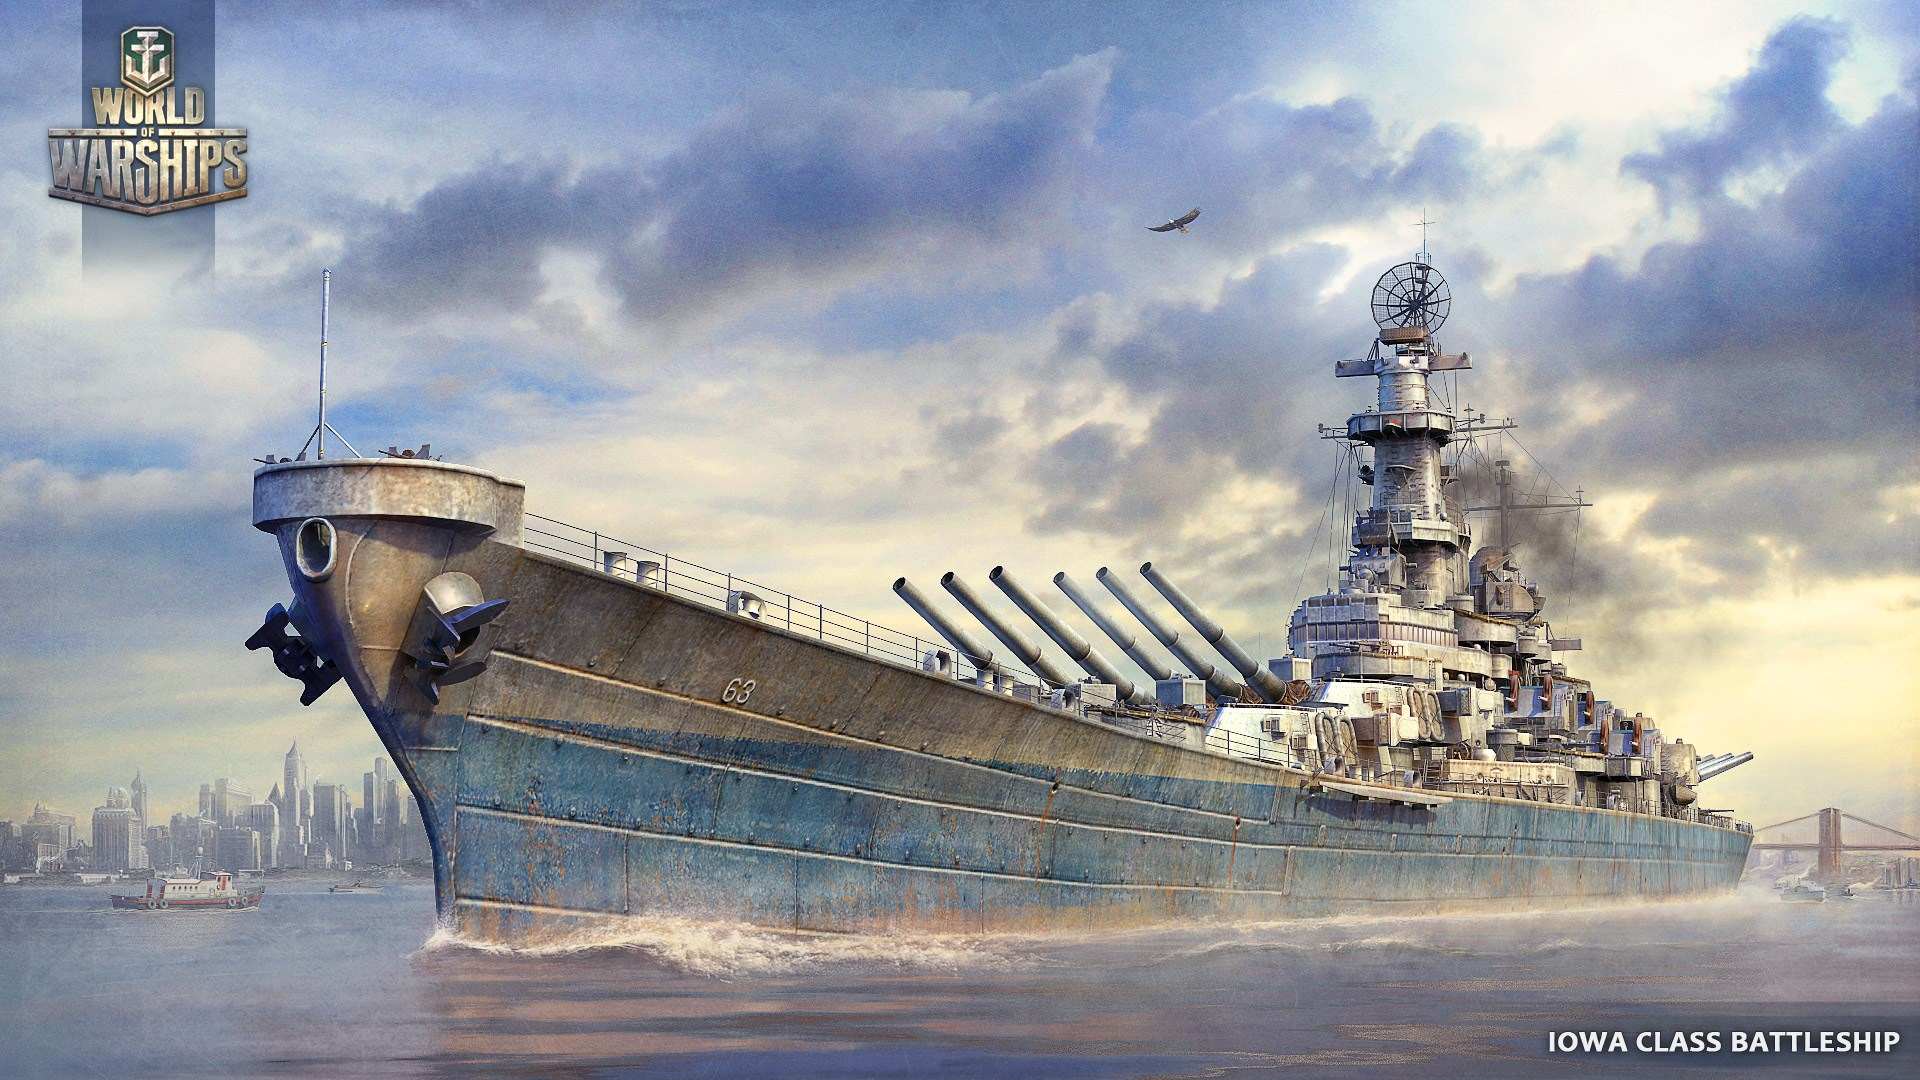 free-desktop-backgrounds-for-World-of-Warships-World-of-Warships-category-wallpaper-wp3805522